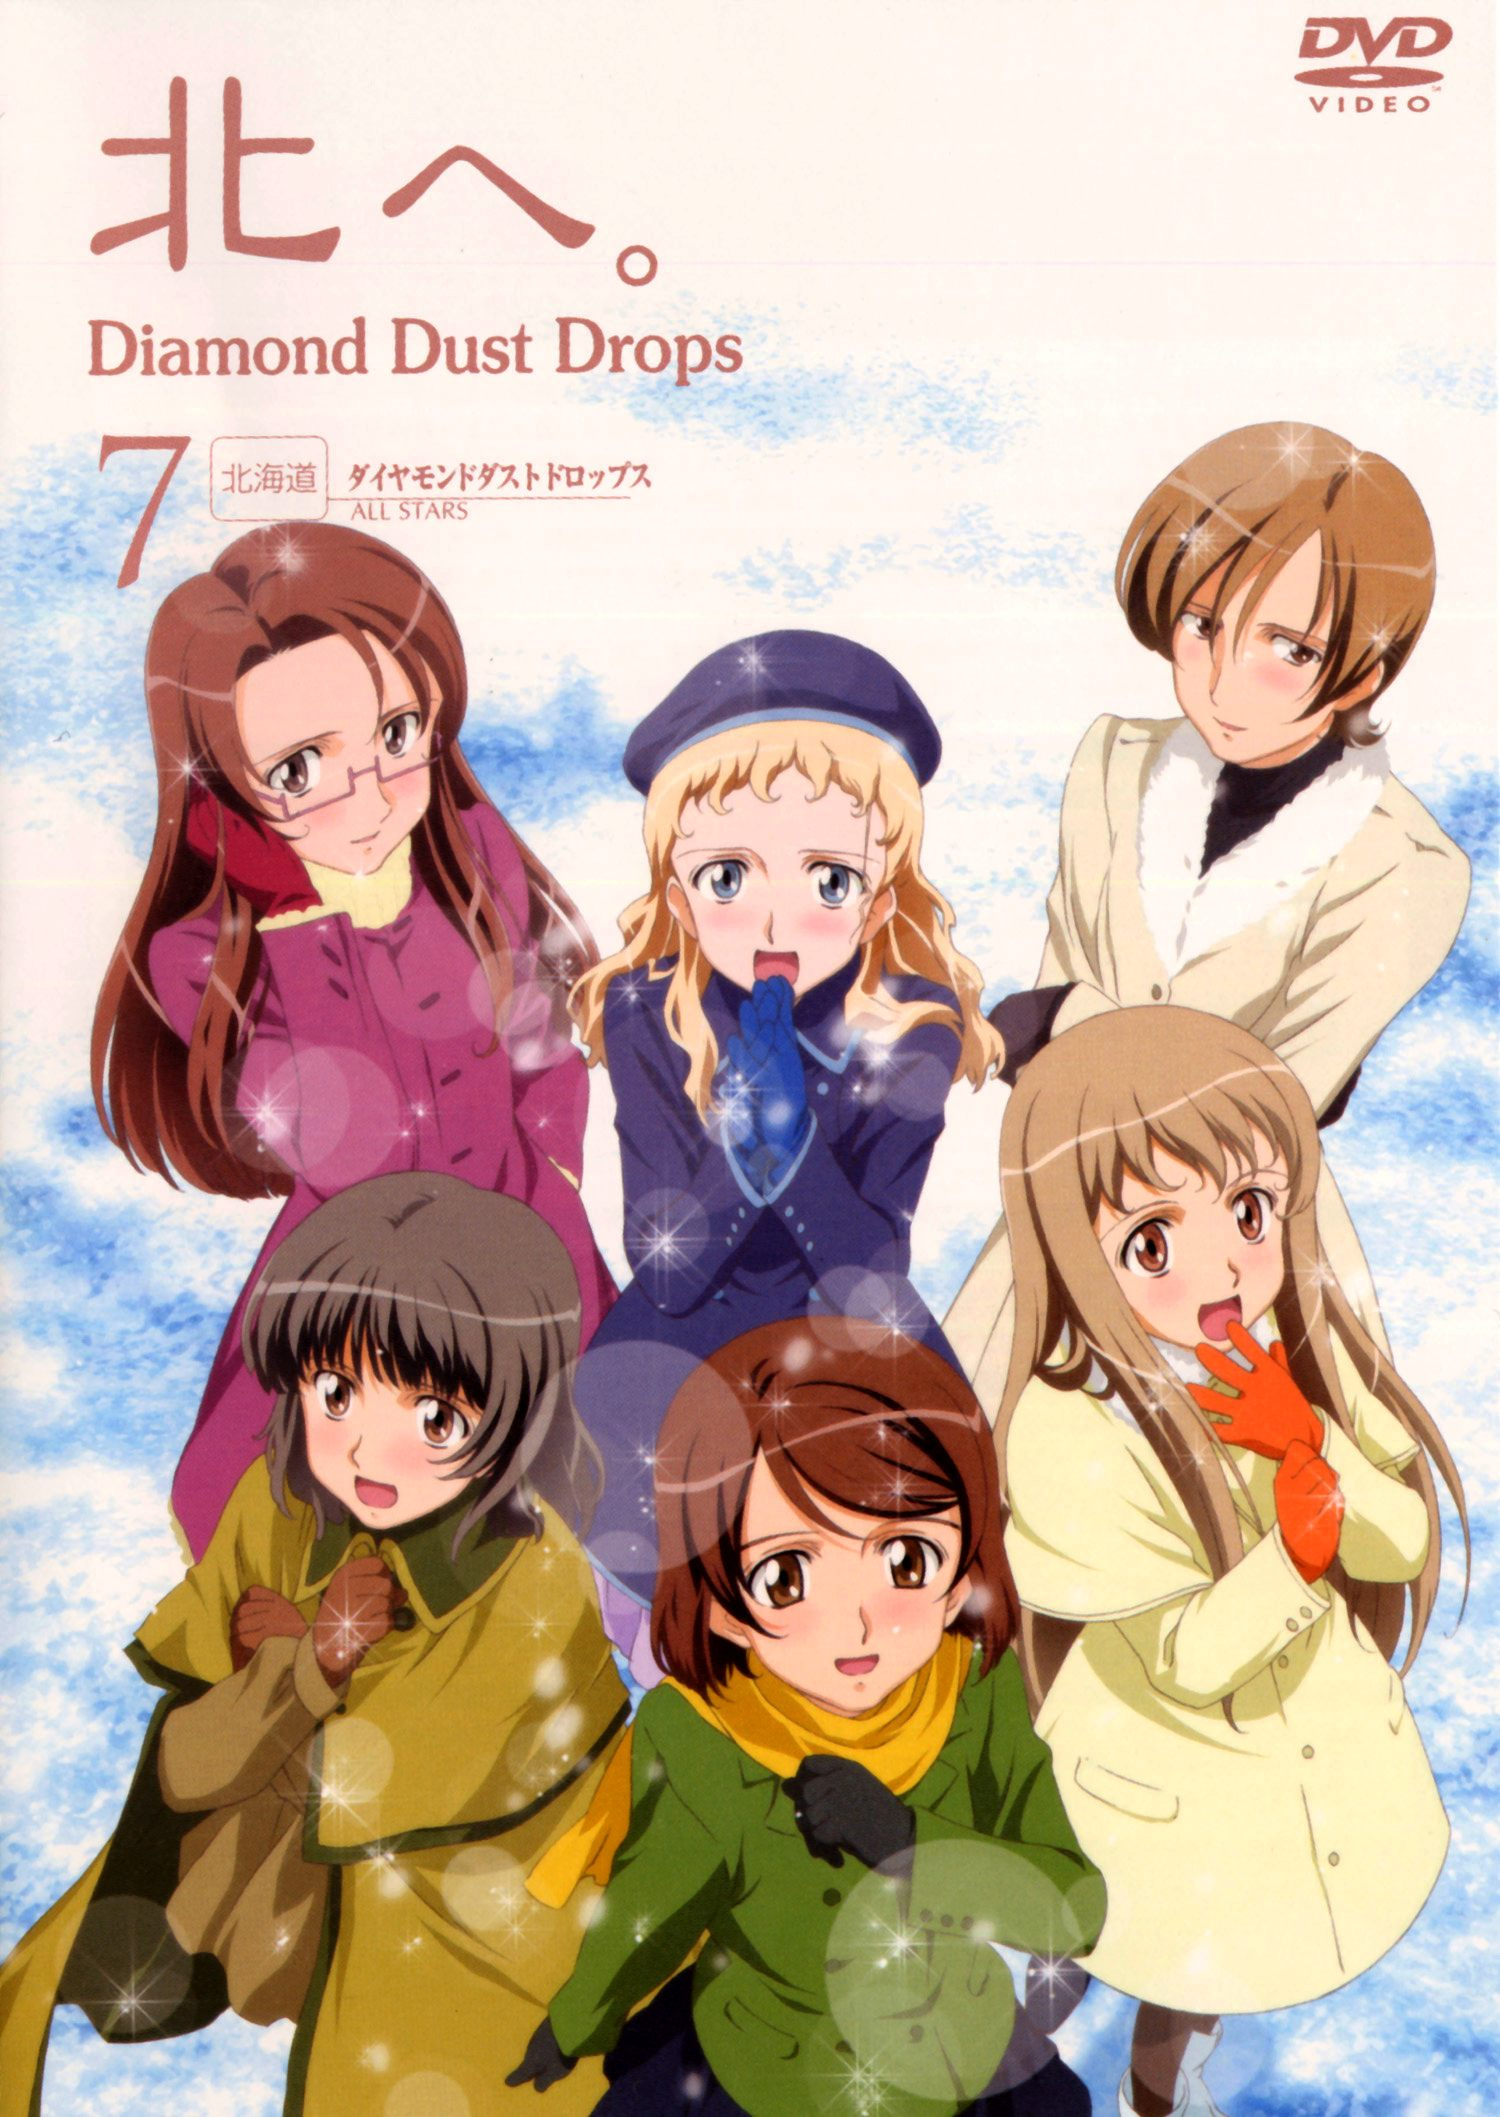 Kita he: Diamond Dust Drops - recenzja anime - rascal.pl